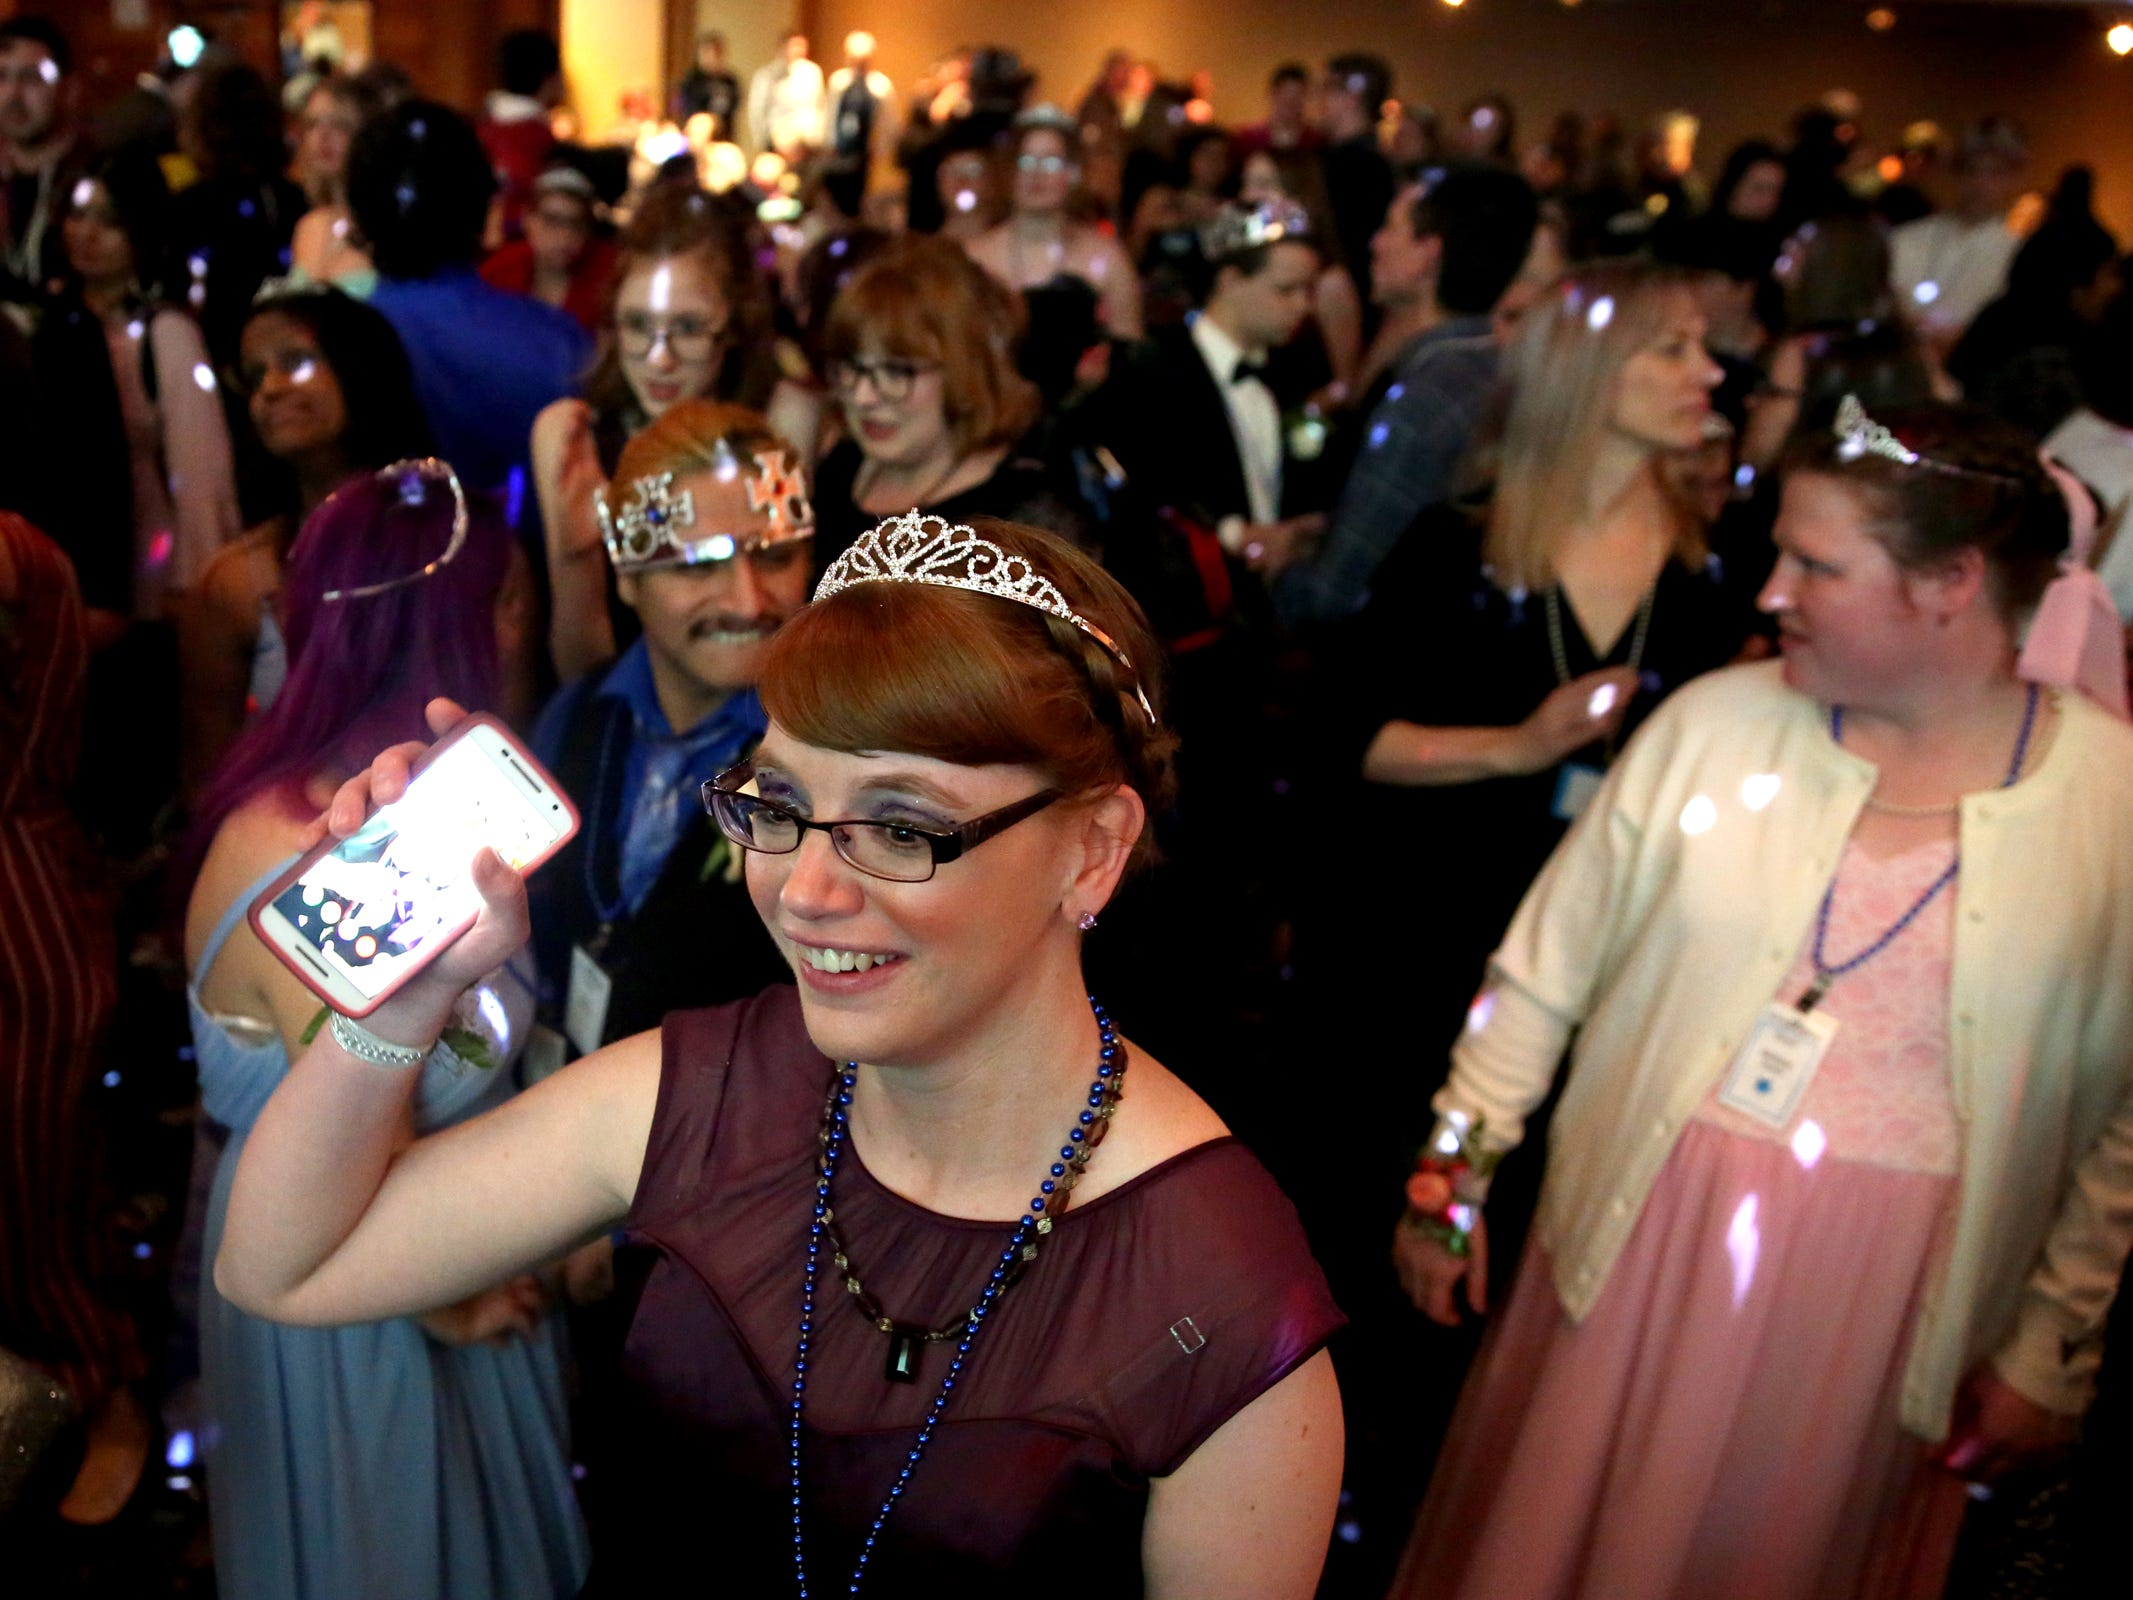 Kris Burden, 36, of Salem, dances at Night to Shine, a prom night experience for people with special needs, at Salem Alliance Church on Friday, Feb. 8, 2019.